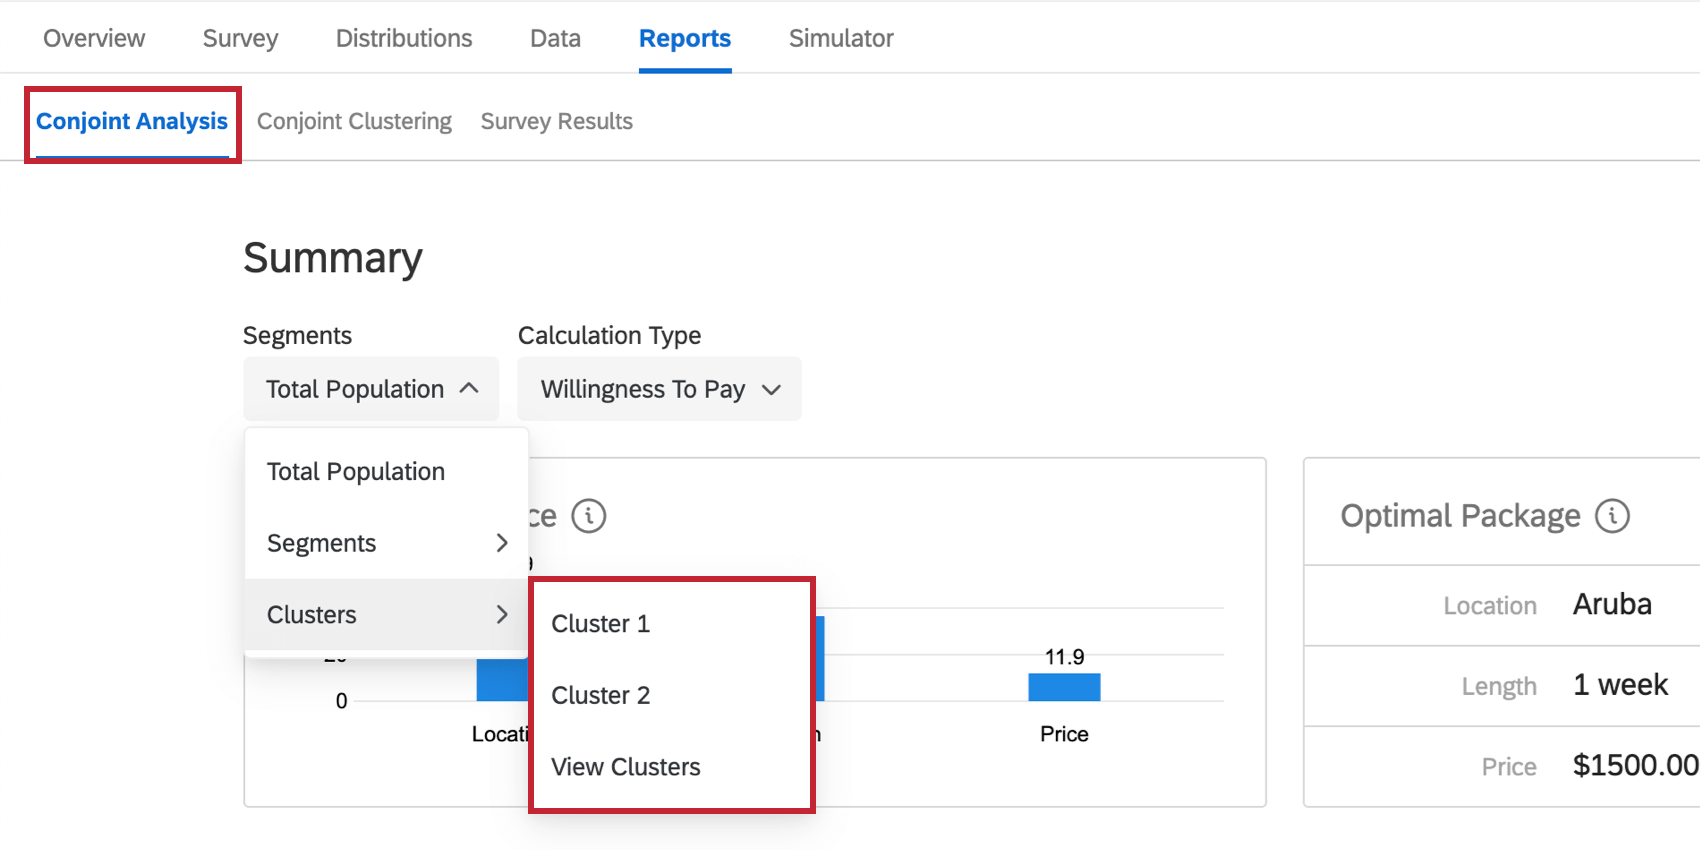 In the Conjoint Reports, the dropdown is expanded and a cluster is selected